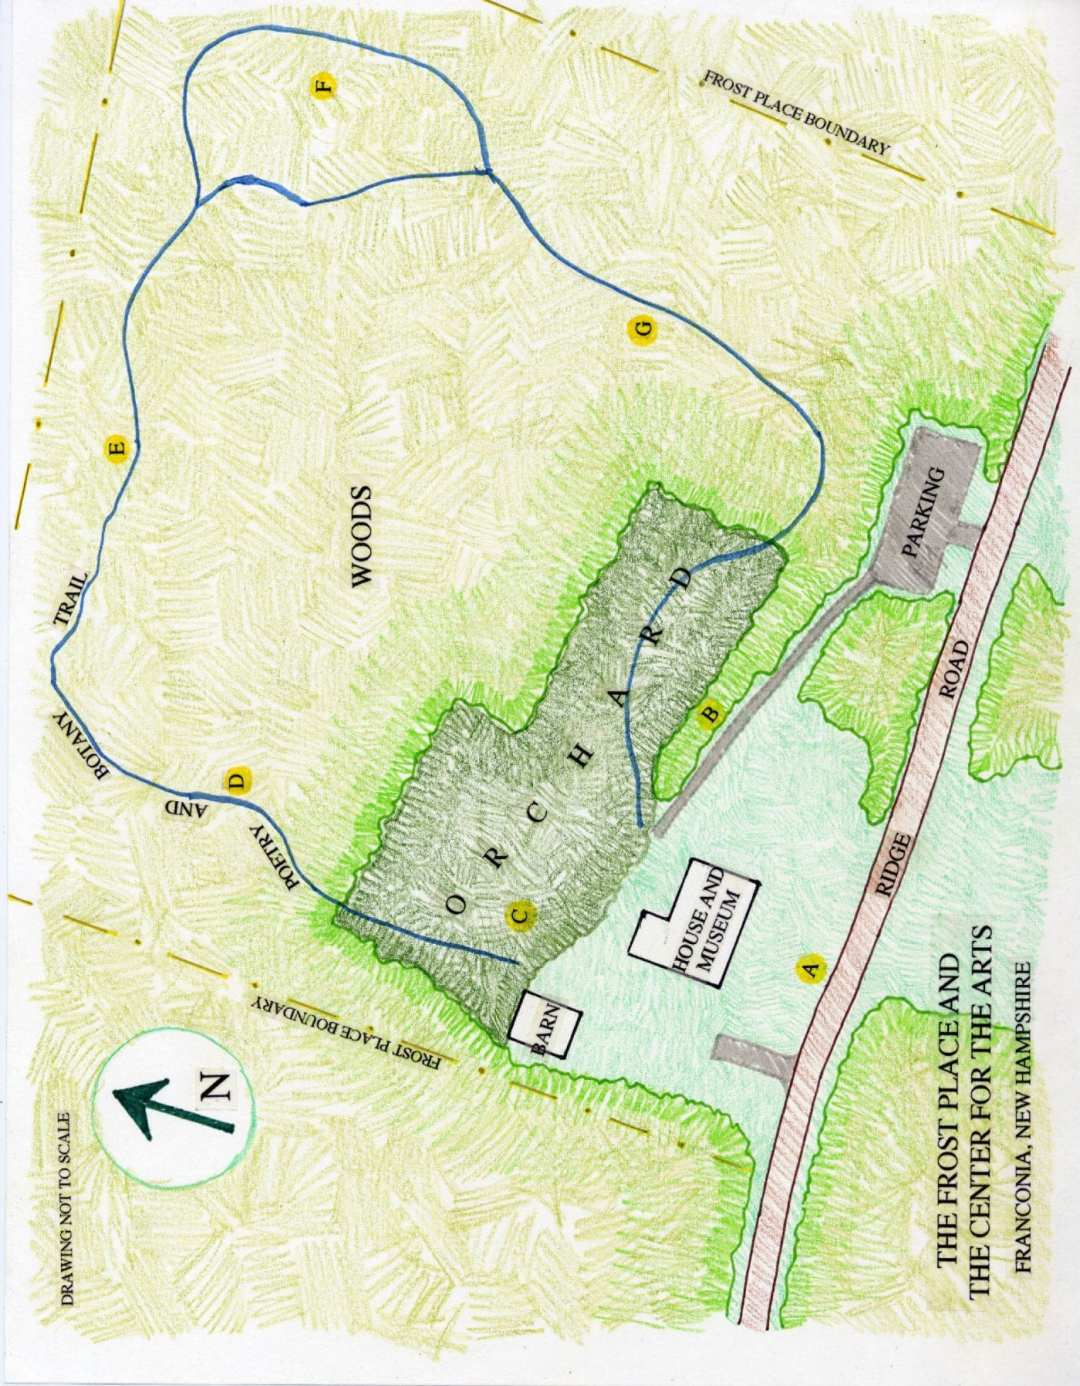 Landscape Design at the Frost Place in Franconia, NH - plan